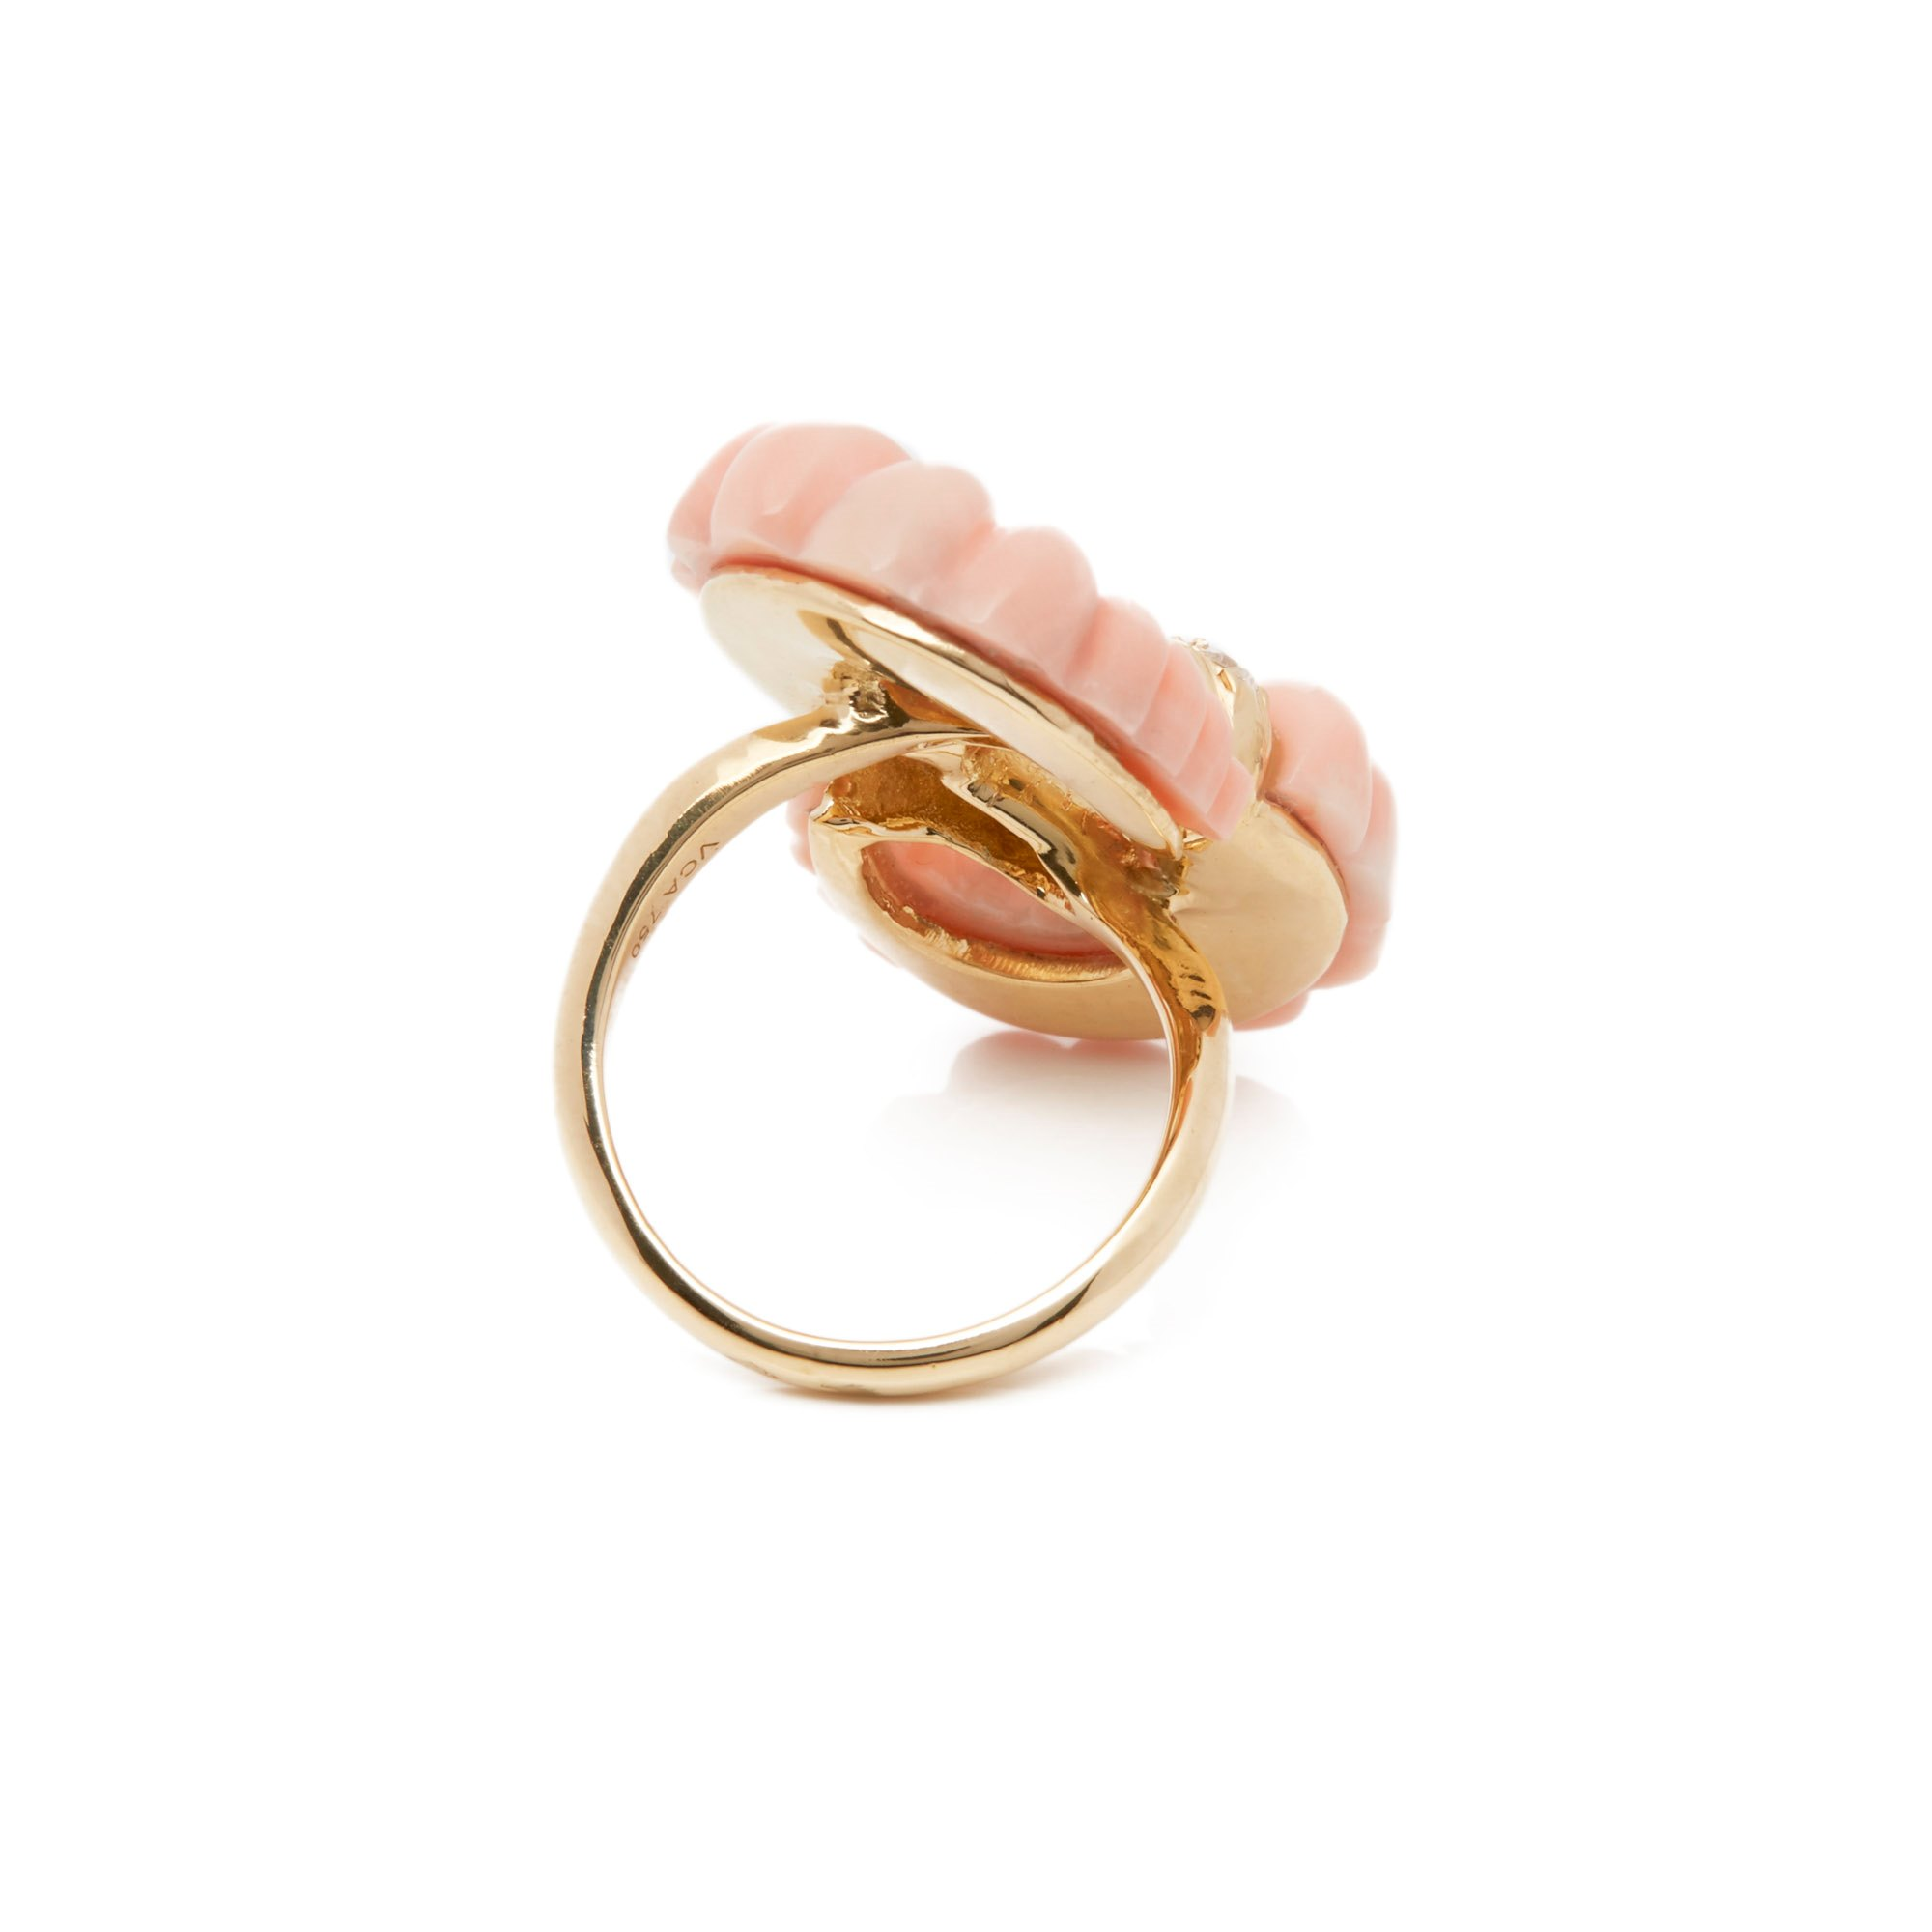 Van Cleef & Arpels 18k Yellow Gold Coral & Diamond Vintage Ring